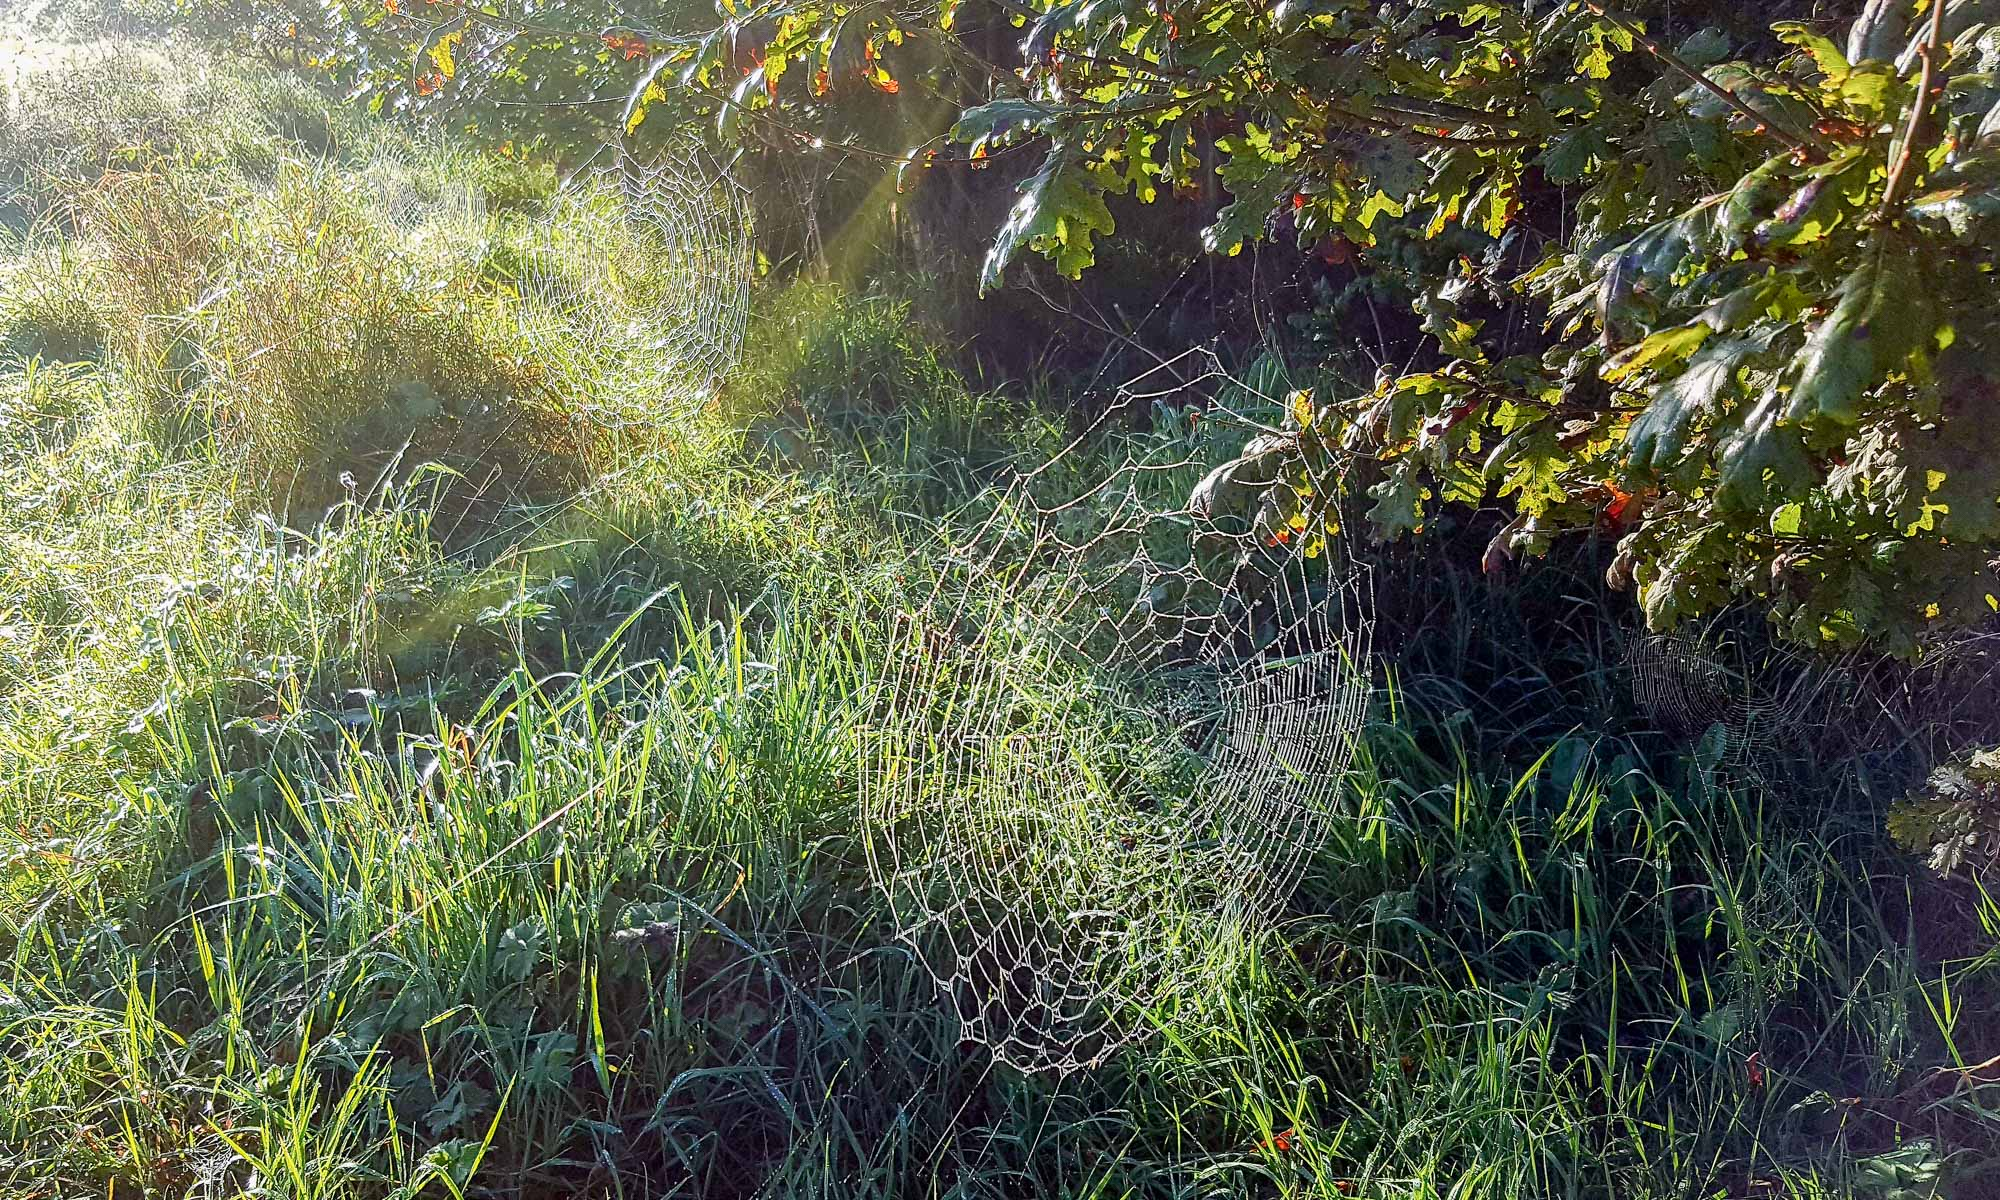 September cobwebs by MJW